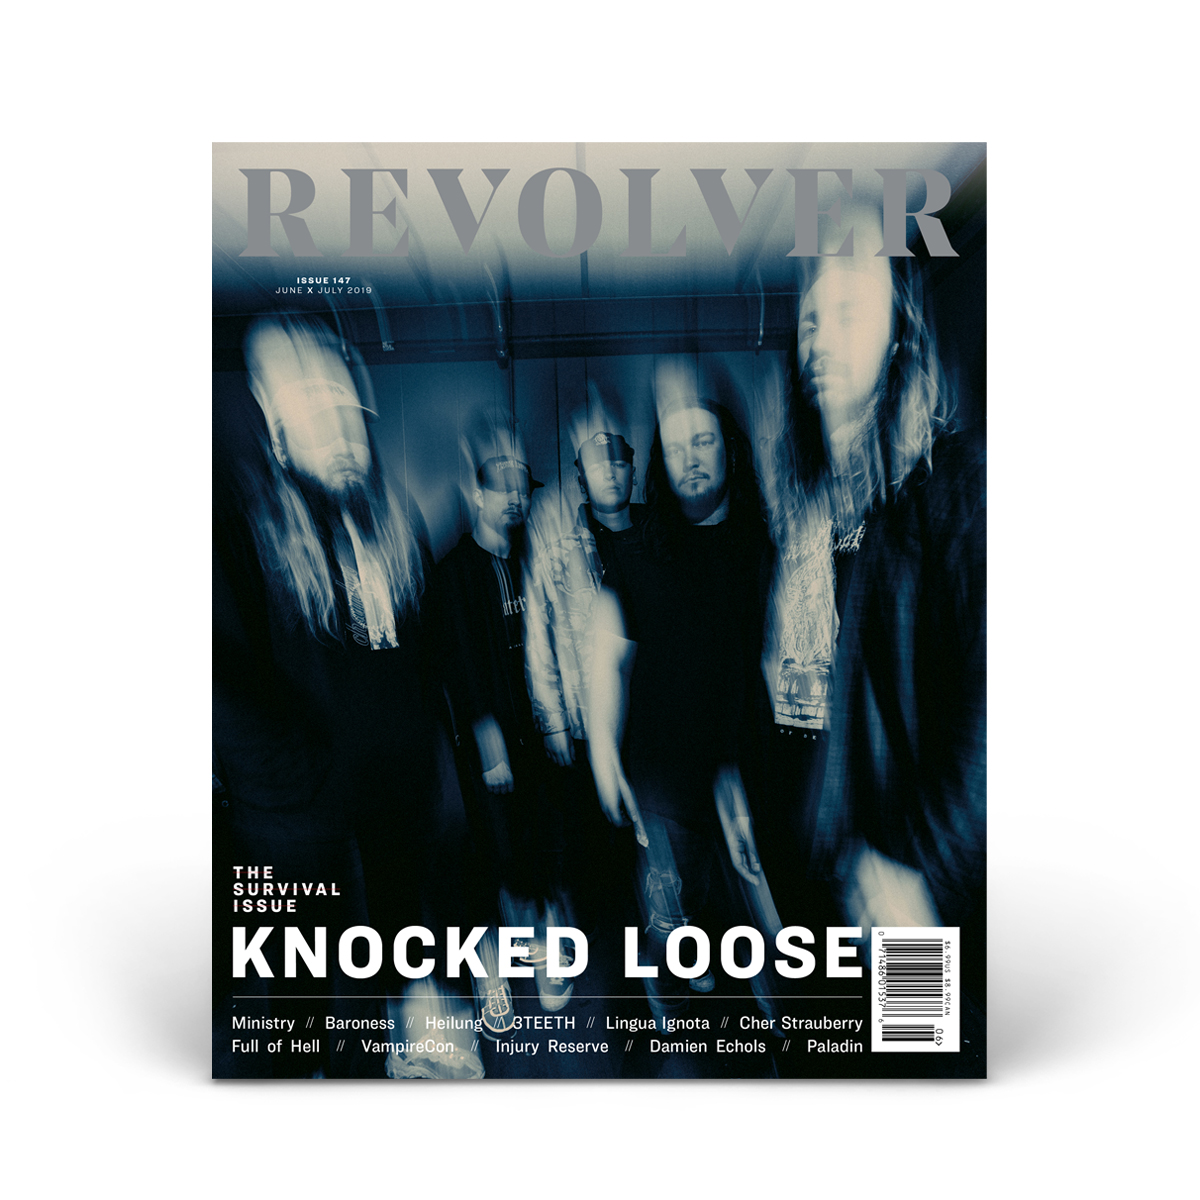 JUNE/JULY 2019 SURVIVAL ISSUE FEATURING KNOCKED LOOSE — COVER 5 OF 5